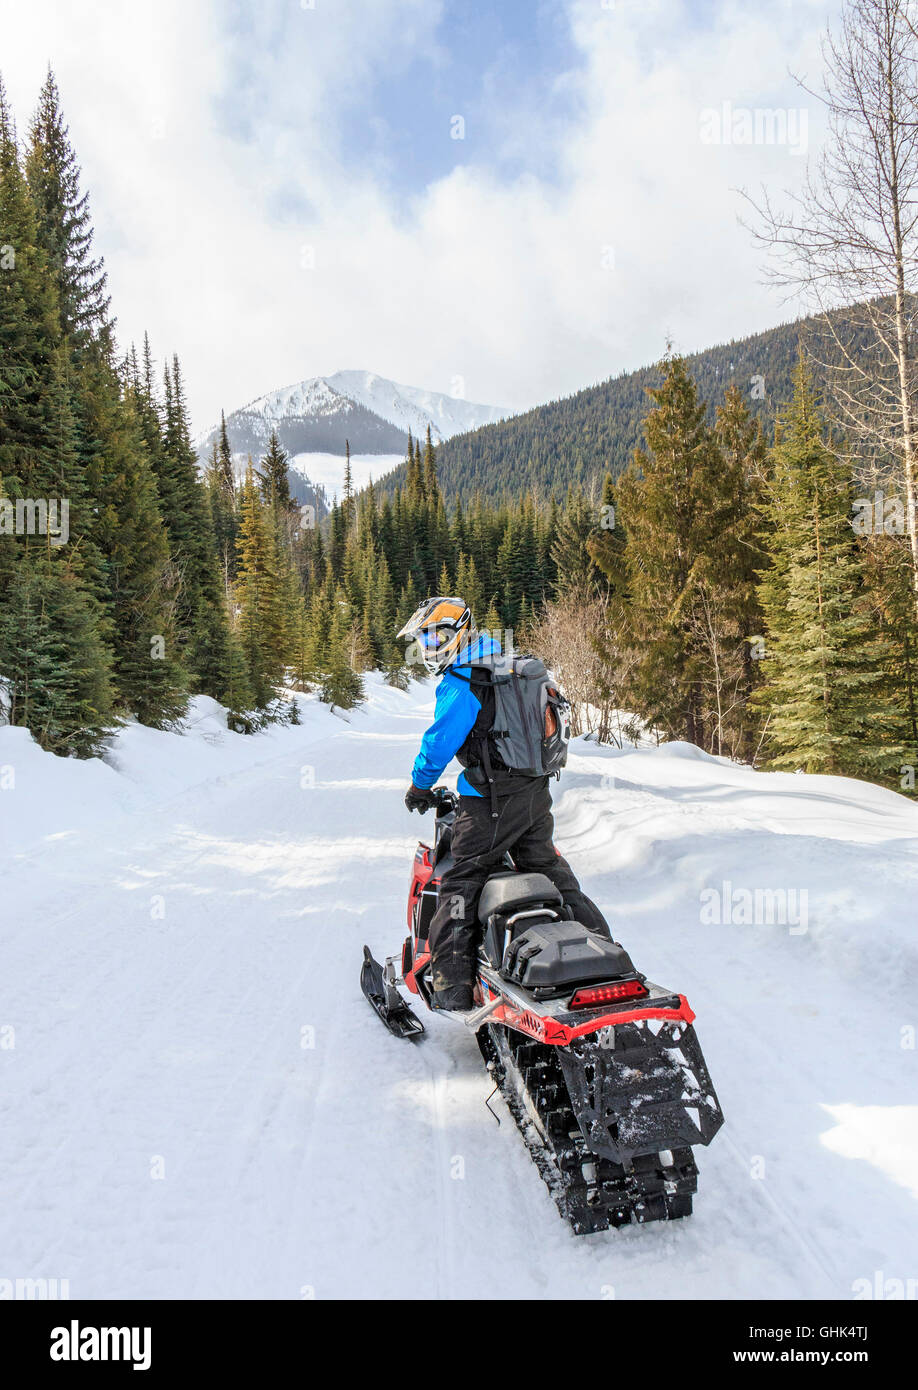 Having fun while snowmobiling in the Purcell Mountains near Golden, BC - Stock Image